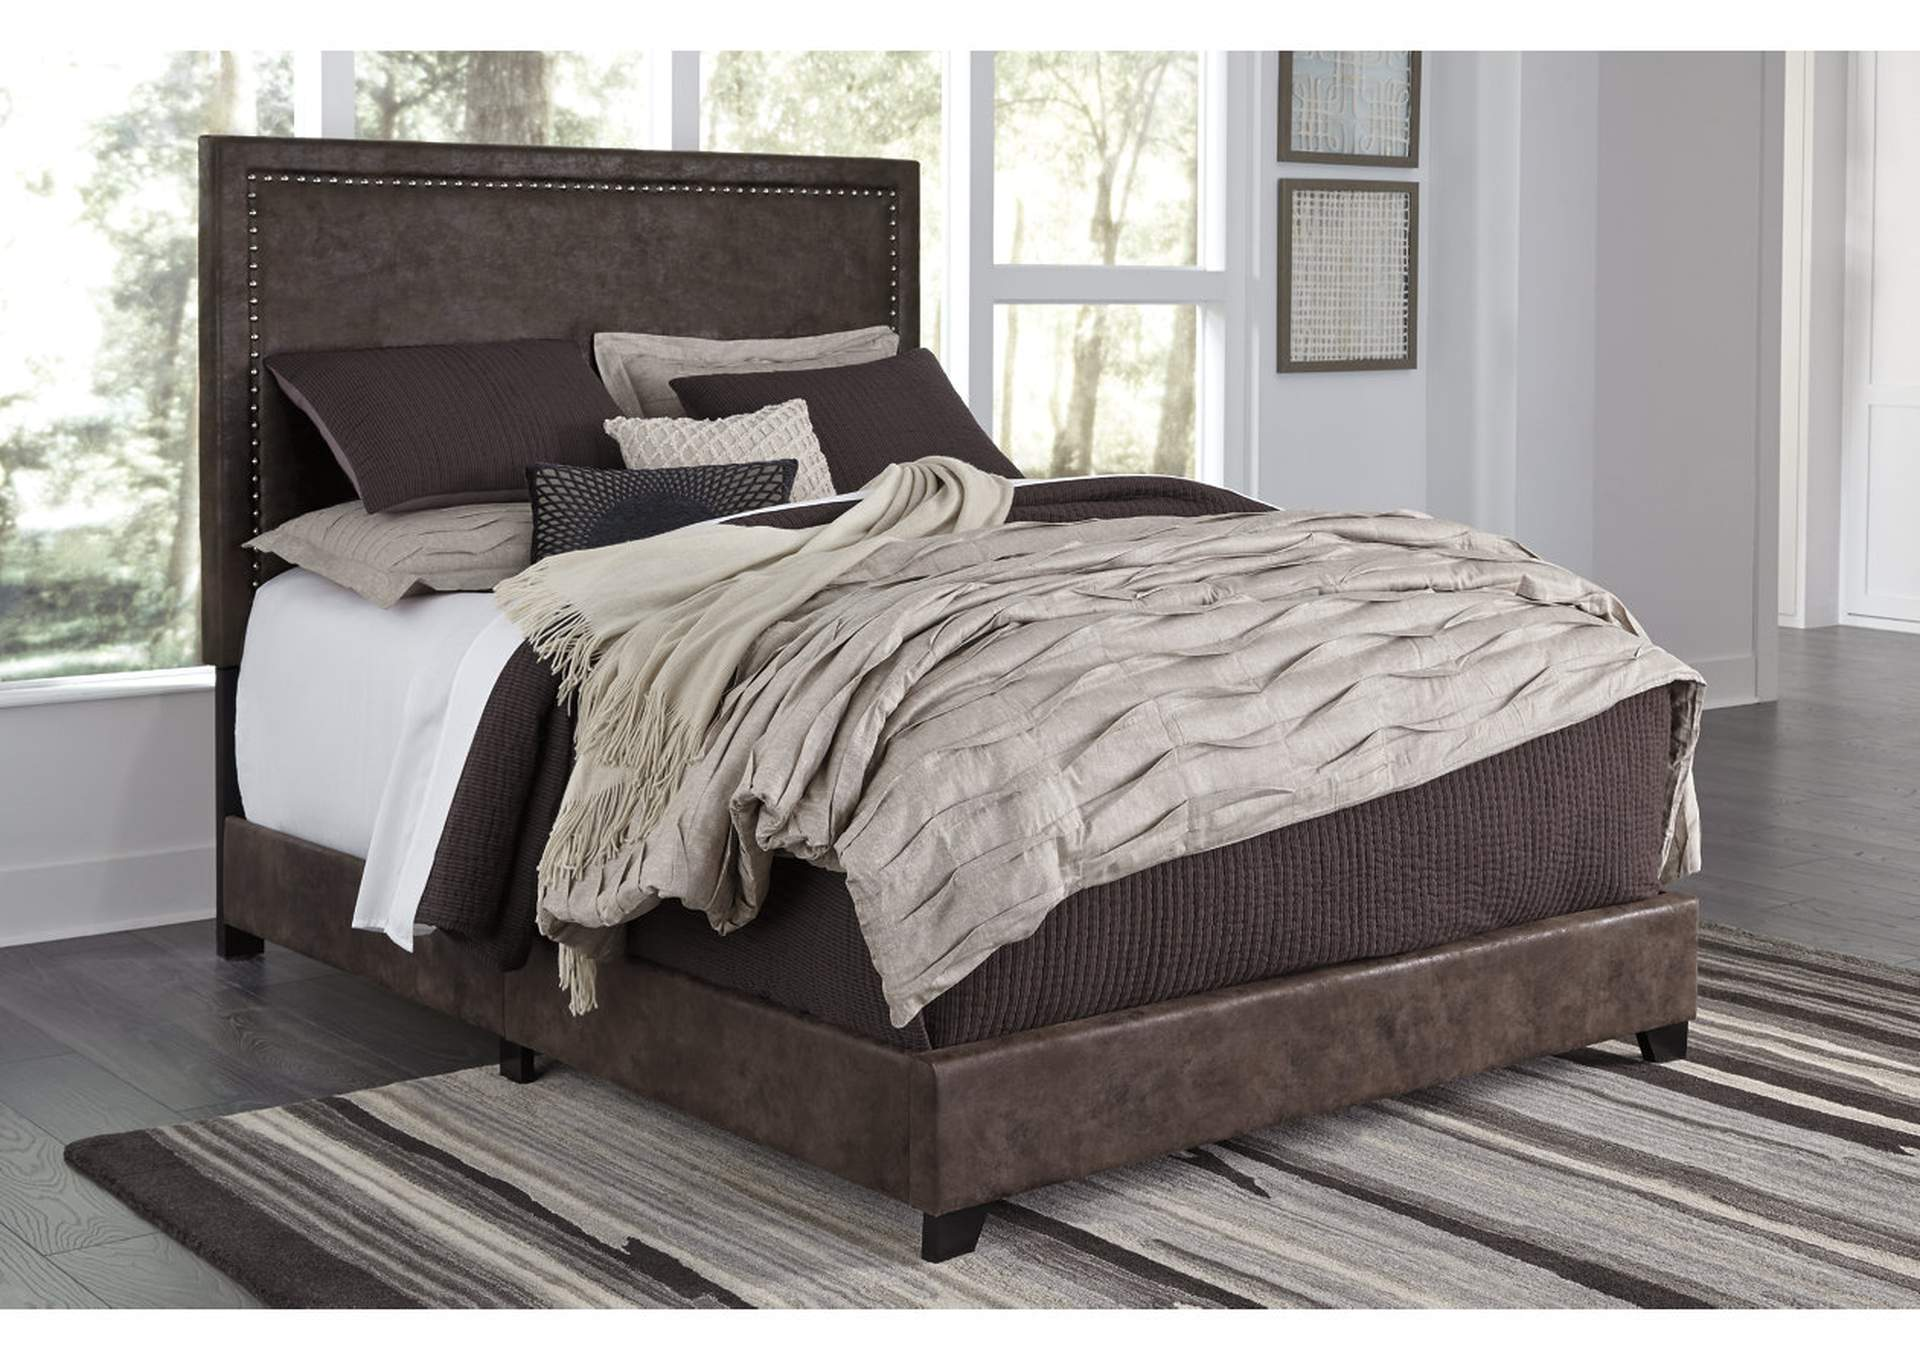 Dolante Brown Queen Upholstered Bed,Signature Design By Ashley